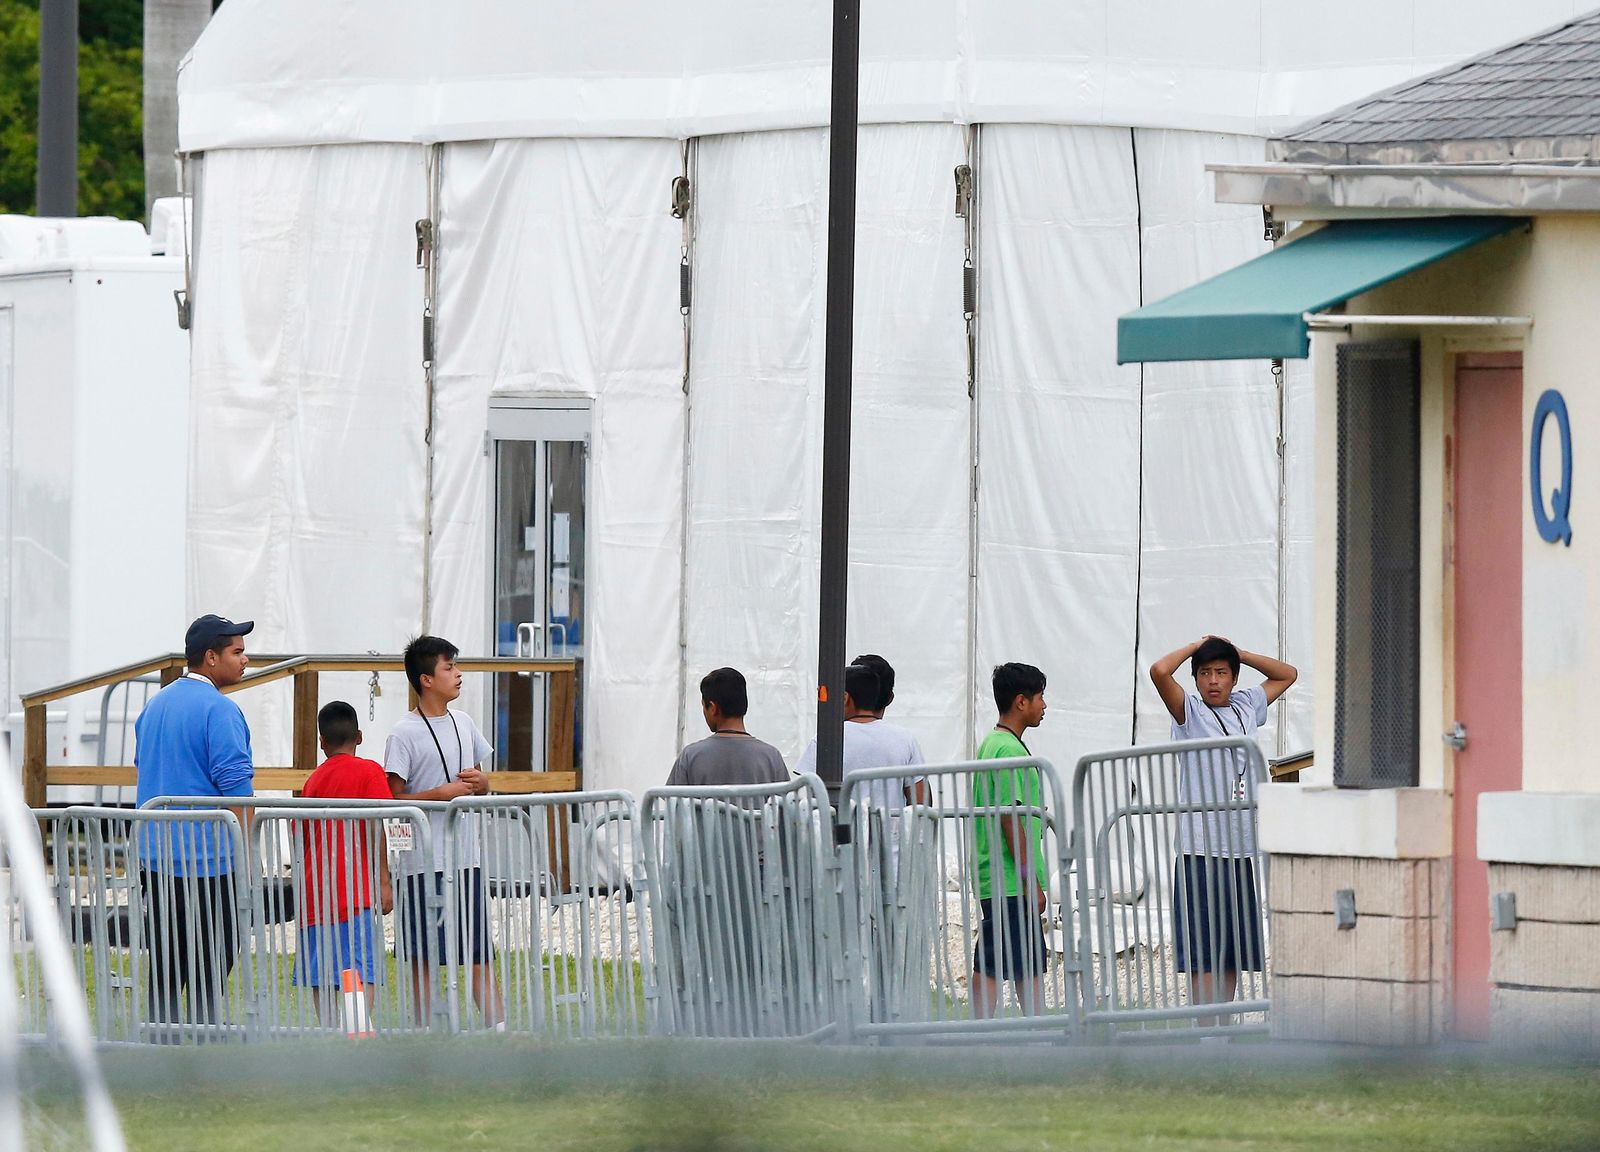 FILE - In this June 20, 2018, file photo, immigrant children walk in a line outside the Homestead Temporary Shelter for Unaccompanied Children, a former Job Corps site that now houses them in Homestead, Fla. (AP Photo/Brynn Anderson, File)